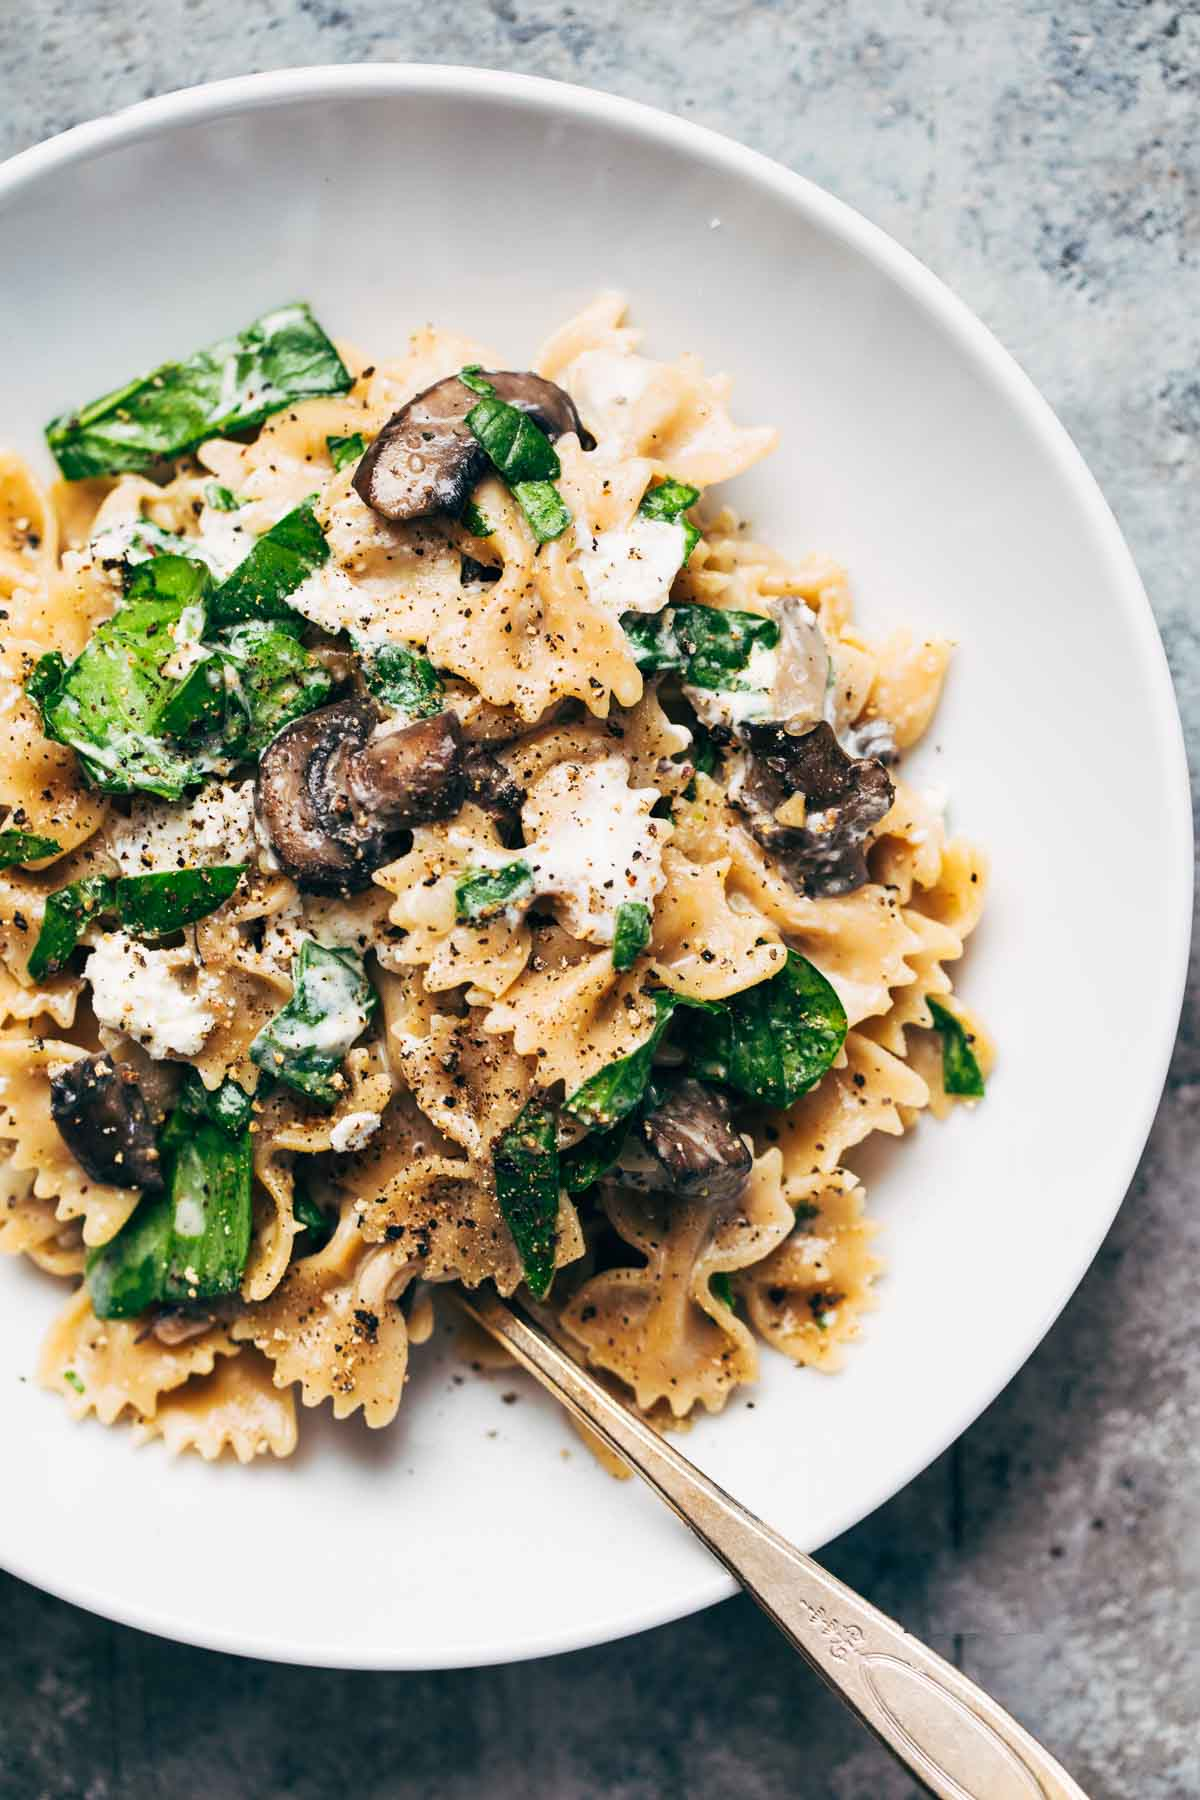 15 Favorite Vegetarian Dinner Recipes: Date Night Mushroom Pasta with goat cheese